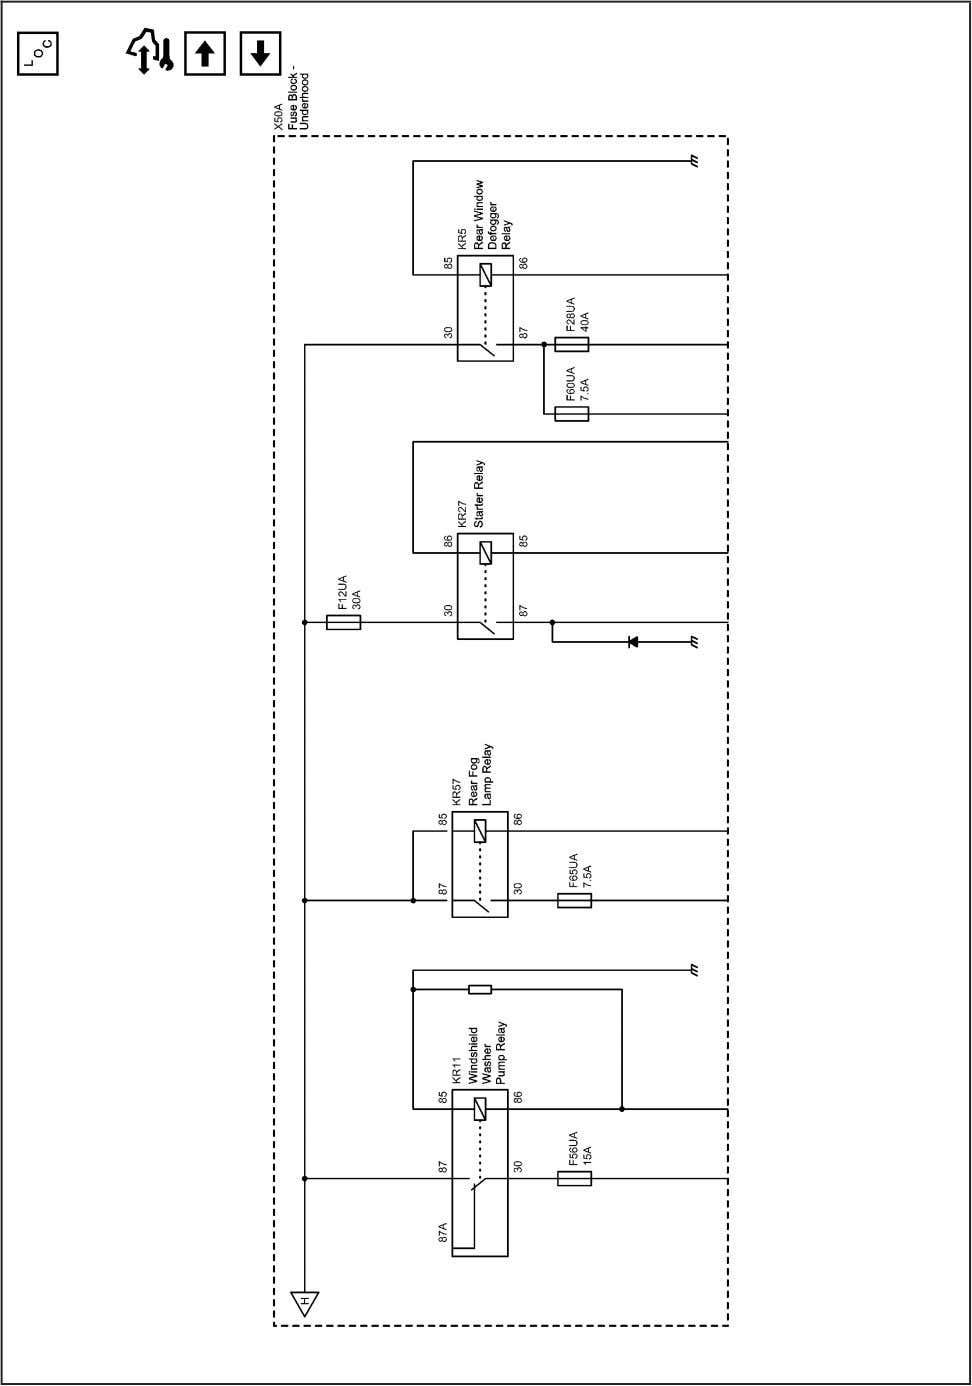 Systems and Power Management 11-53 2203078 Power Distribution Schematics (B+ Bus UEC (6 of 6)) 2010